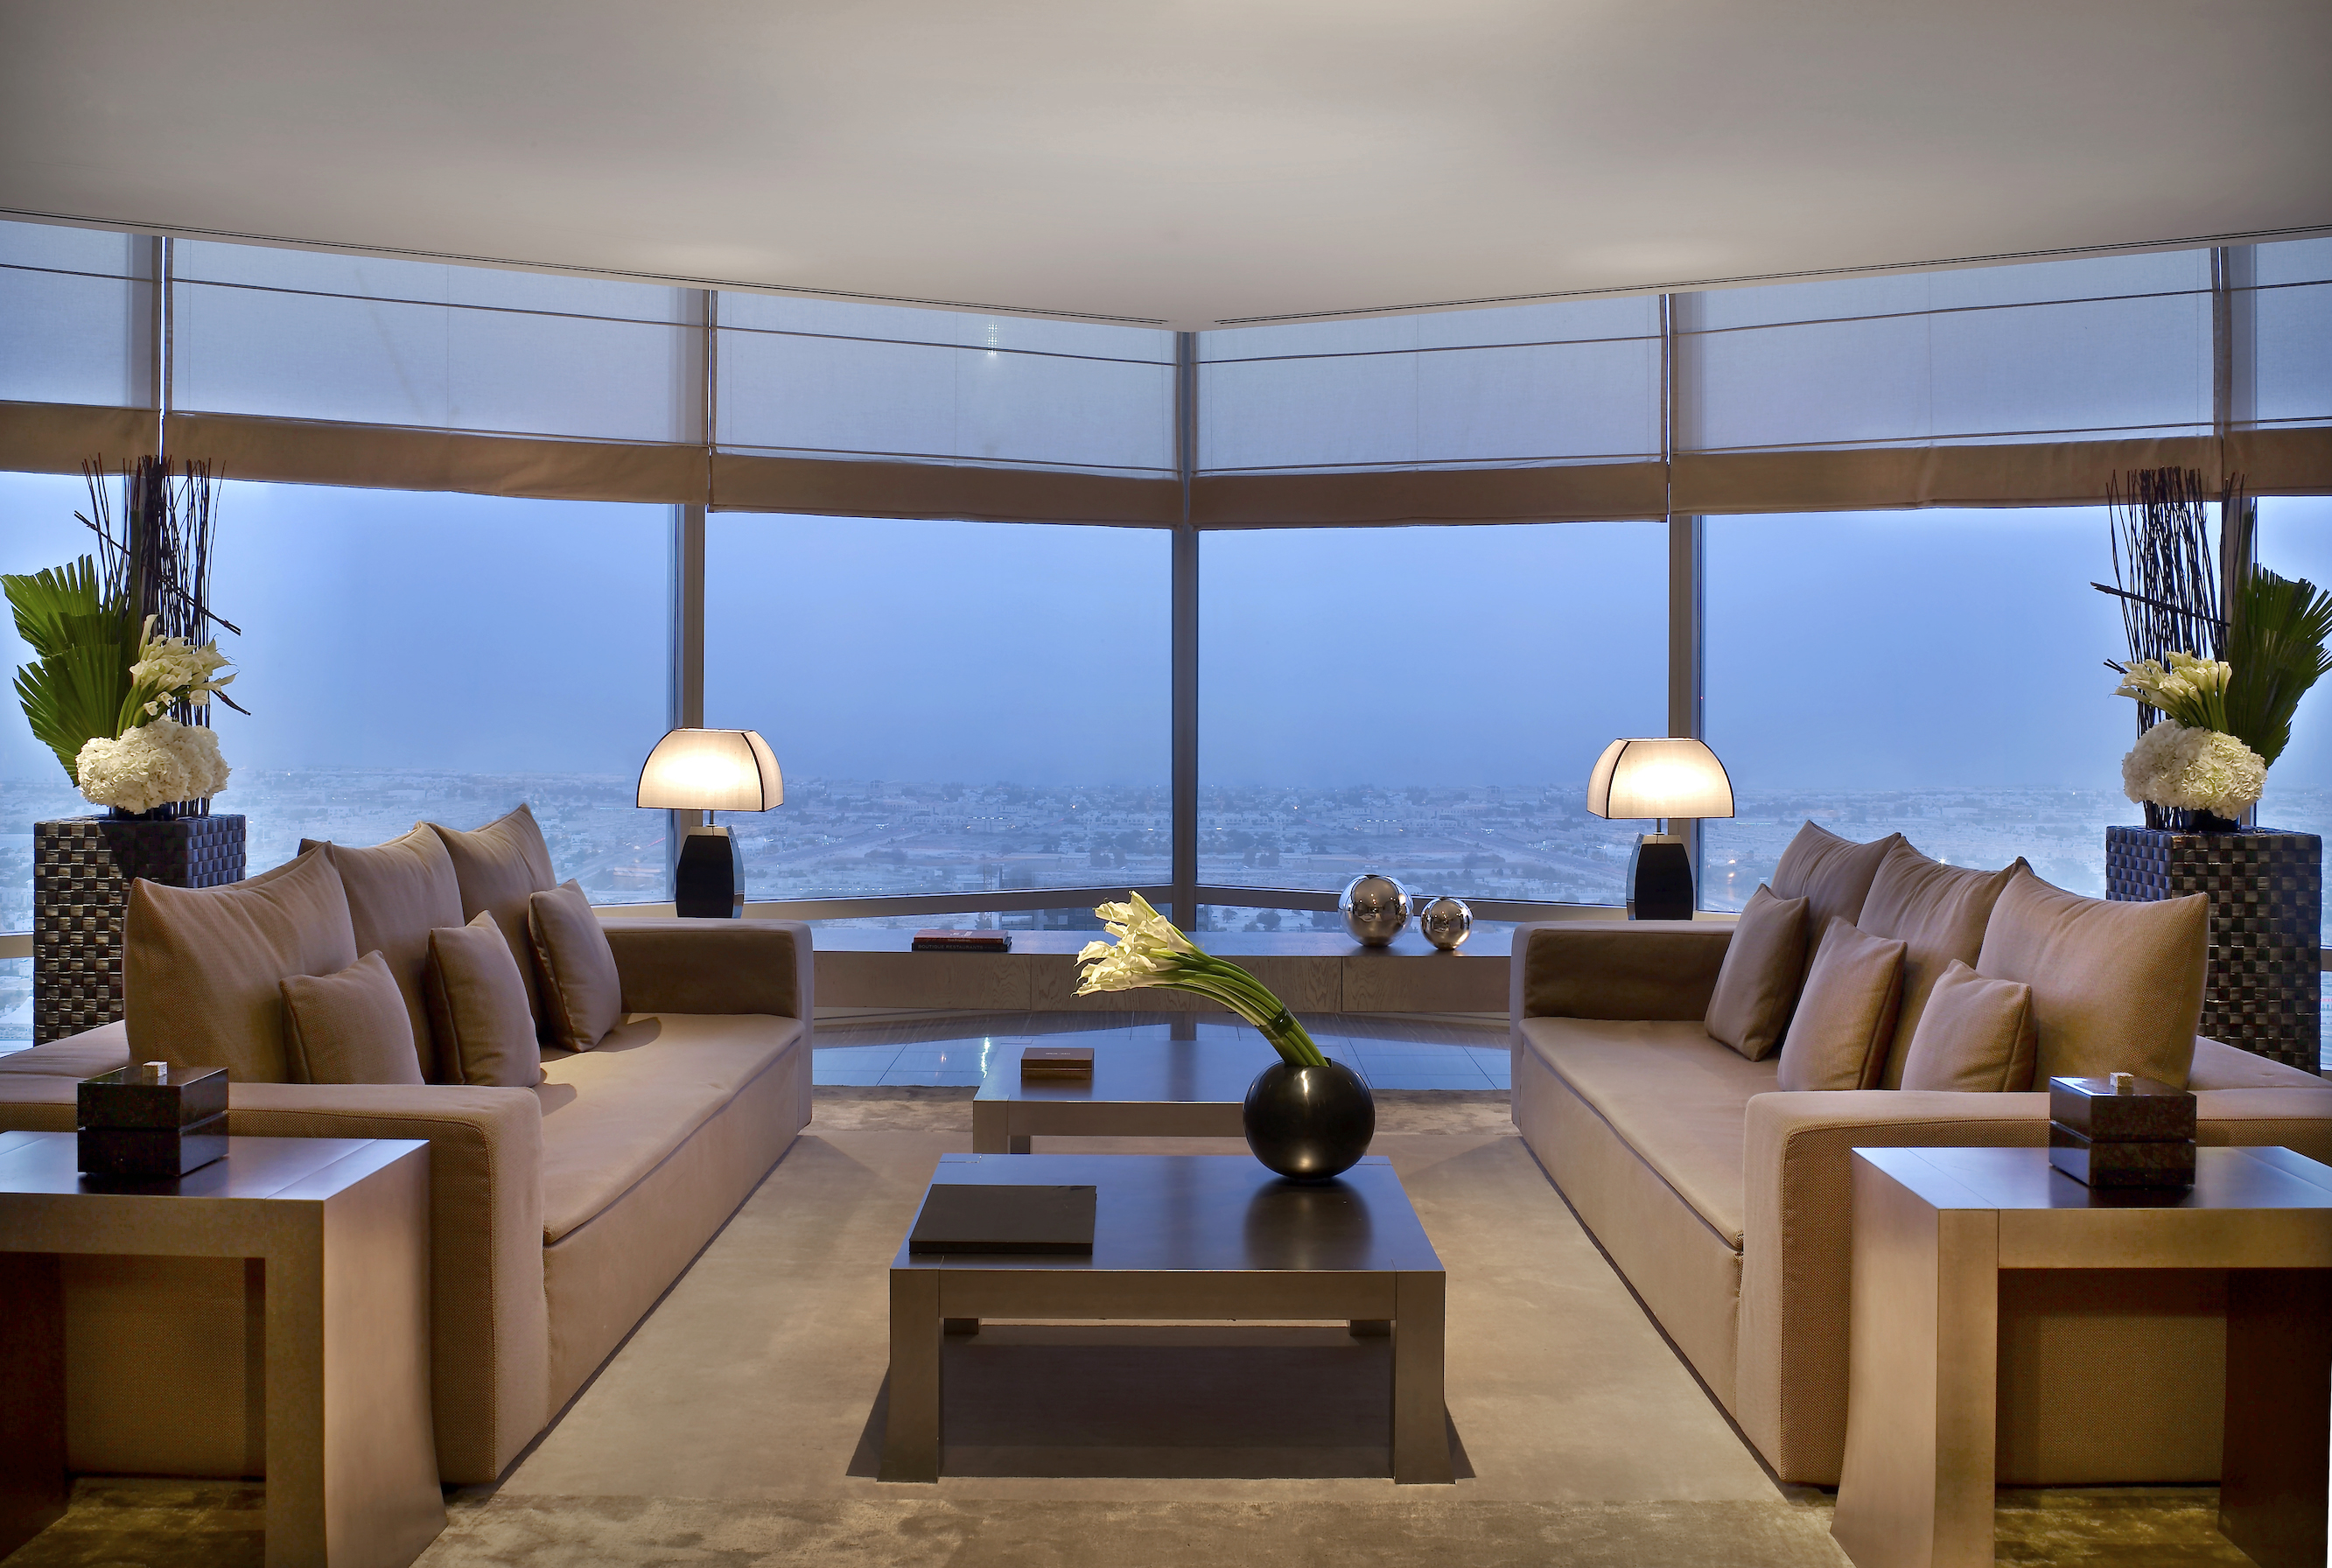 armani-dubai-suite-living-room-